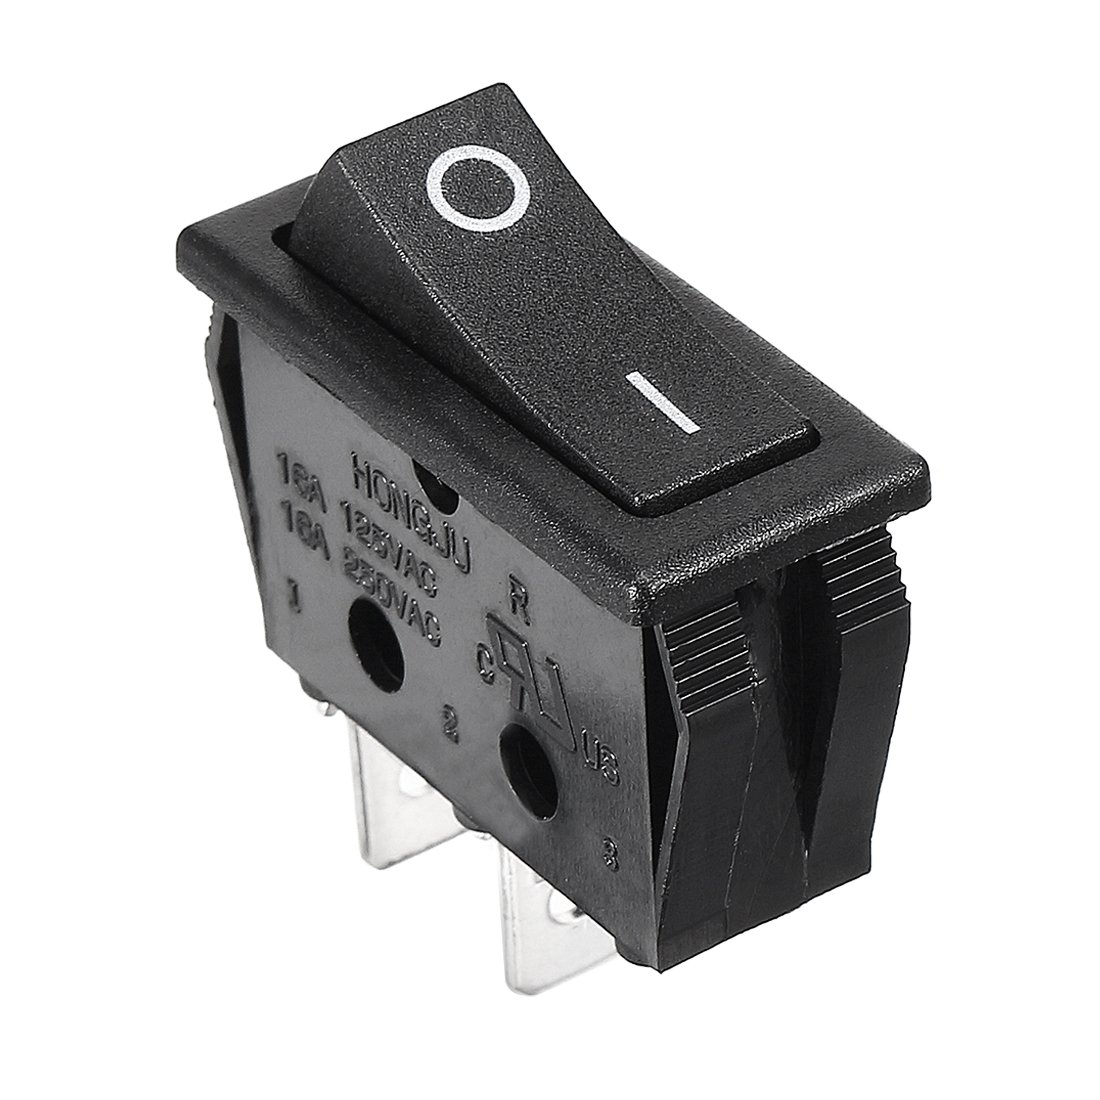 uxcell 2 Pcs AC 16A//250V On//Off SPST Panel Mount Snap In Boat Rocker Switch UL Listed a13010800ux0426